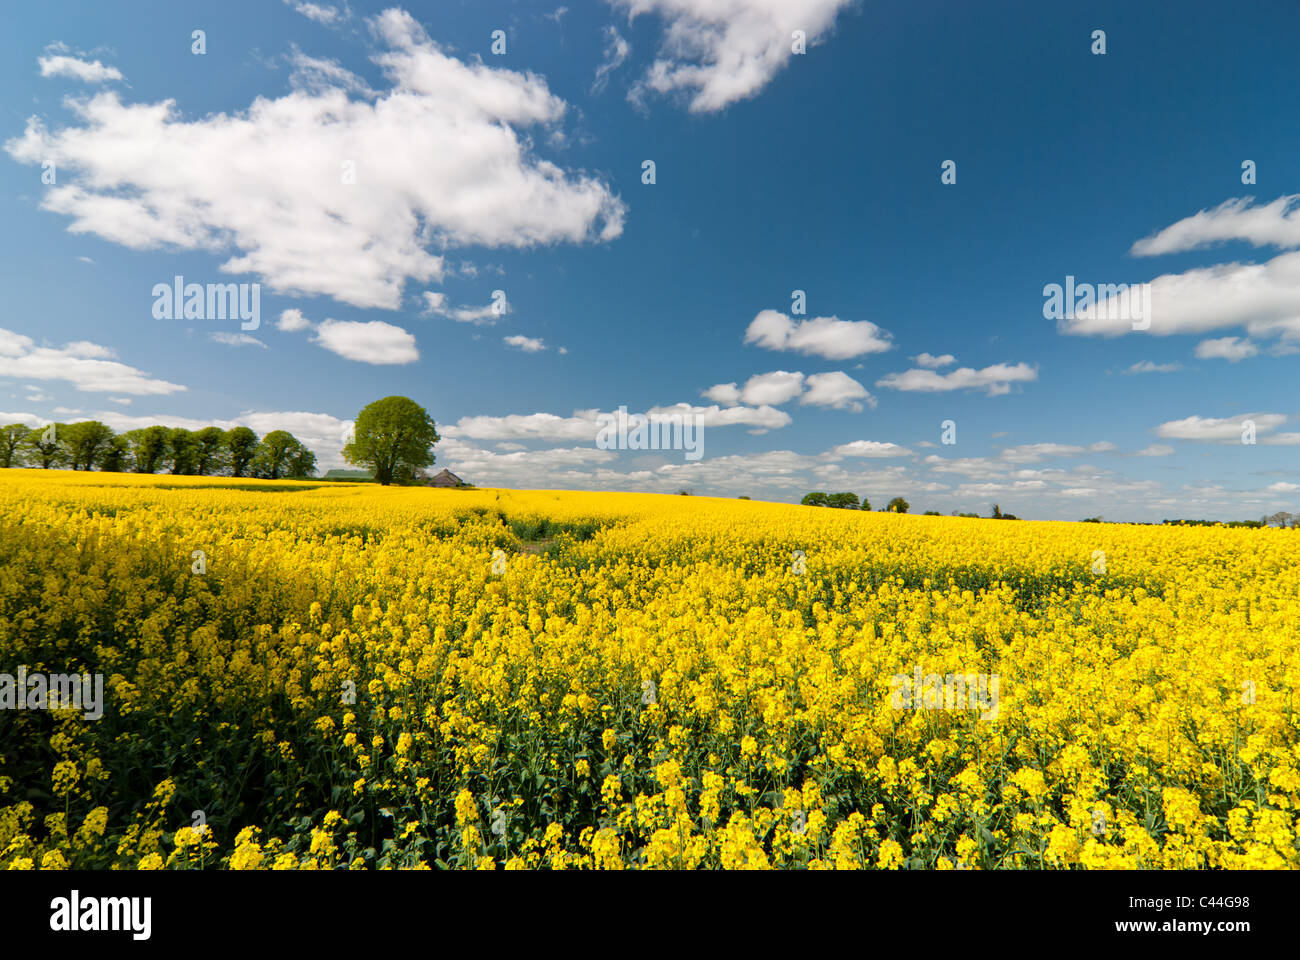 A massive rapeseed field in full bloom on the outskirts of Dublin, Ireland. Stock Photo